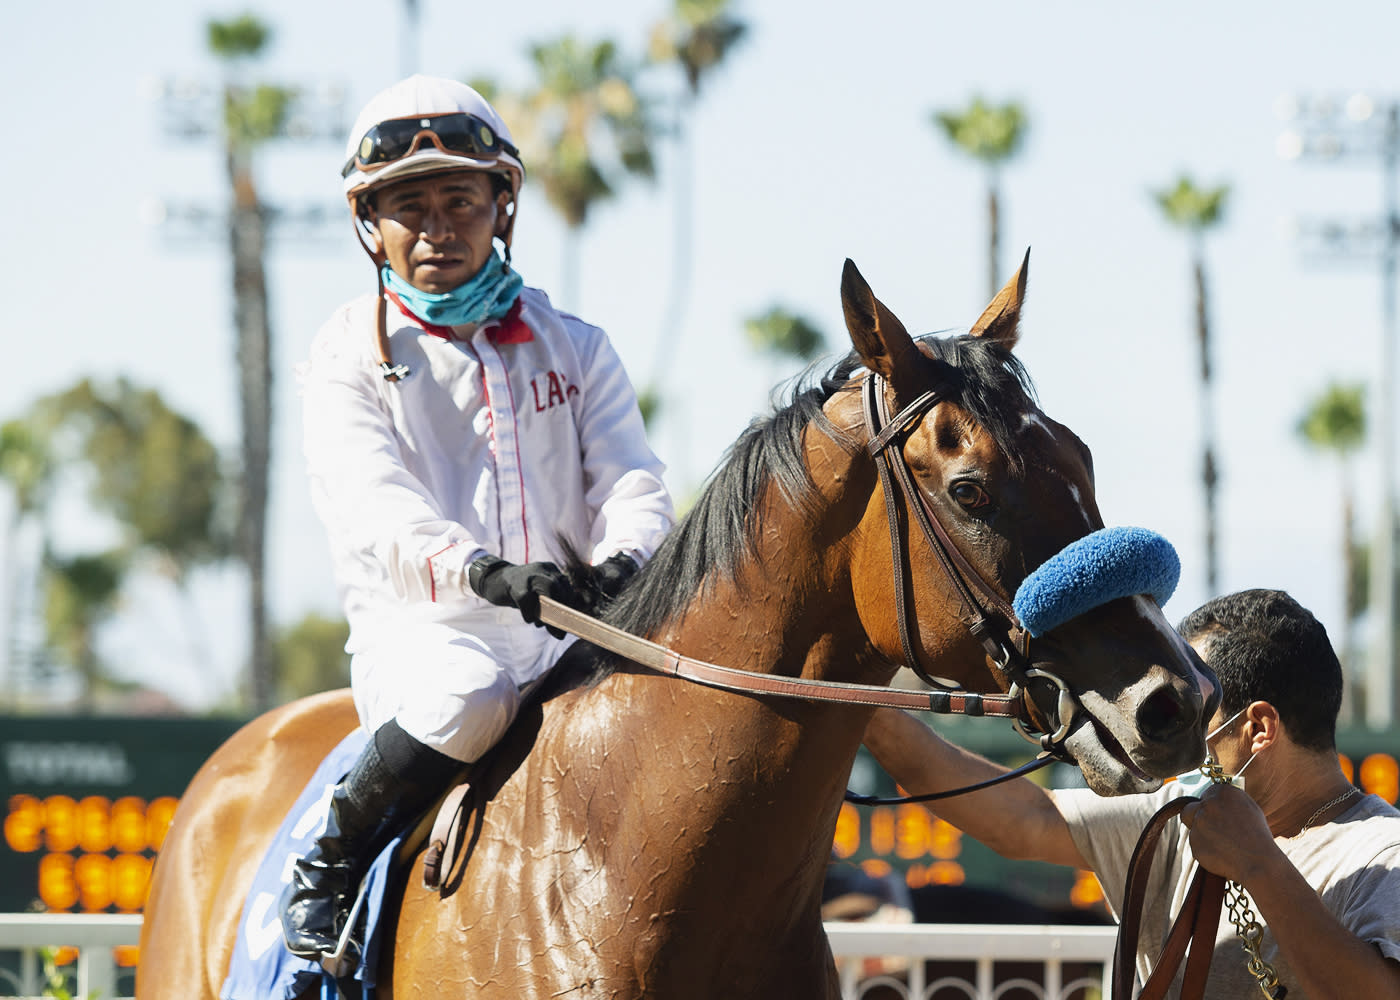 In this image provided by Benoit Photo, Jockey Martin Garcia guides Sneaking Out to the winner's circle after their victory in the Martin Garcia win the Grade II, $200,000 Great Lady M Stakes, Saturday, July 4, 2020 at Los Alamitos Race Course, Cypress Calif. (Benoit Photo via AP)